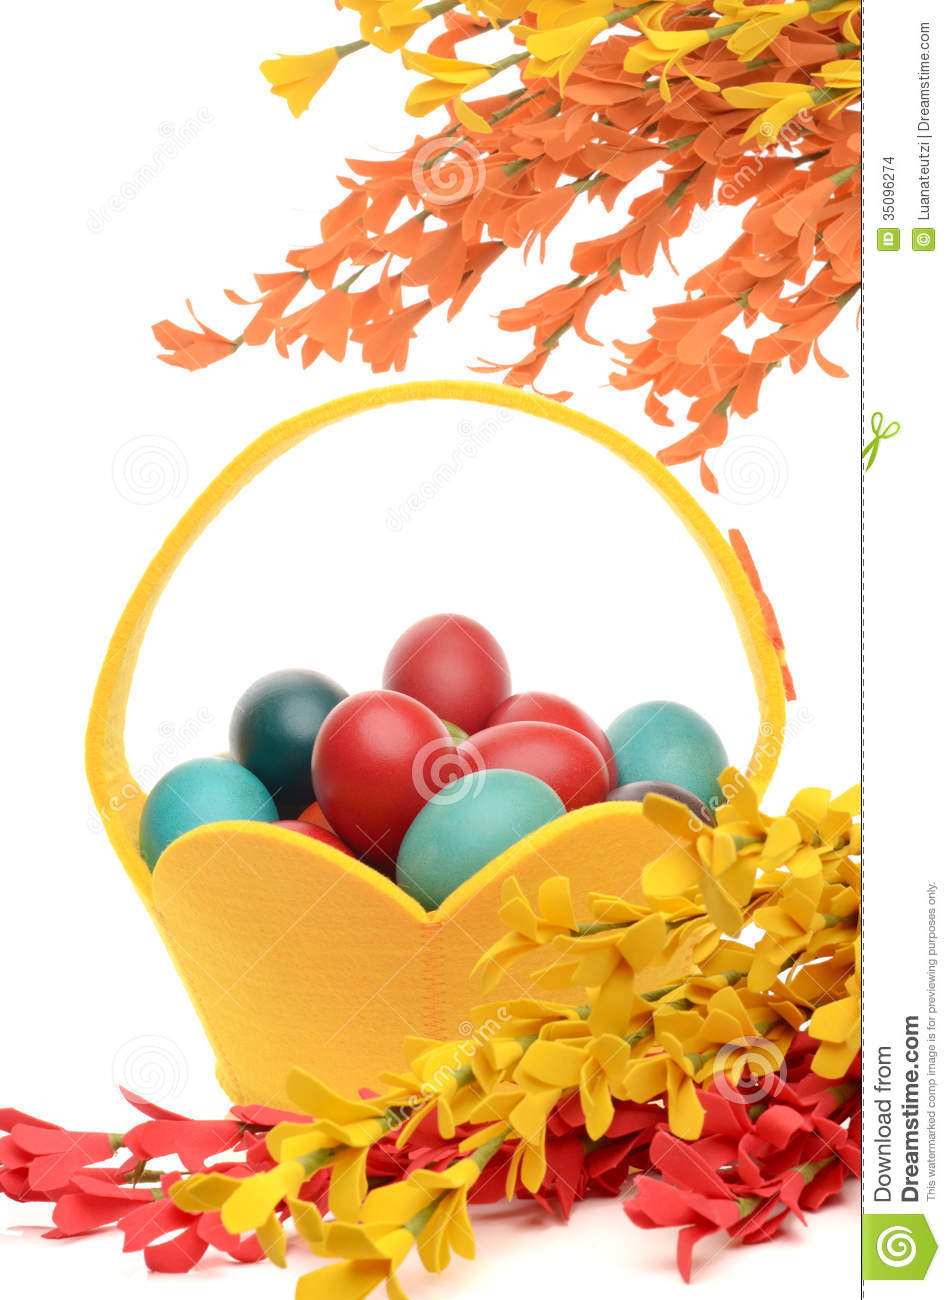 Colorful Hand Dyed Easter Eggs In A Yellow Basket, Decorations.